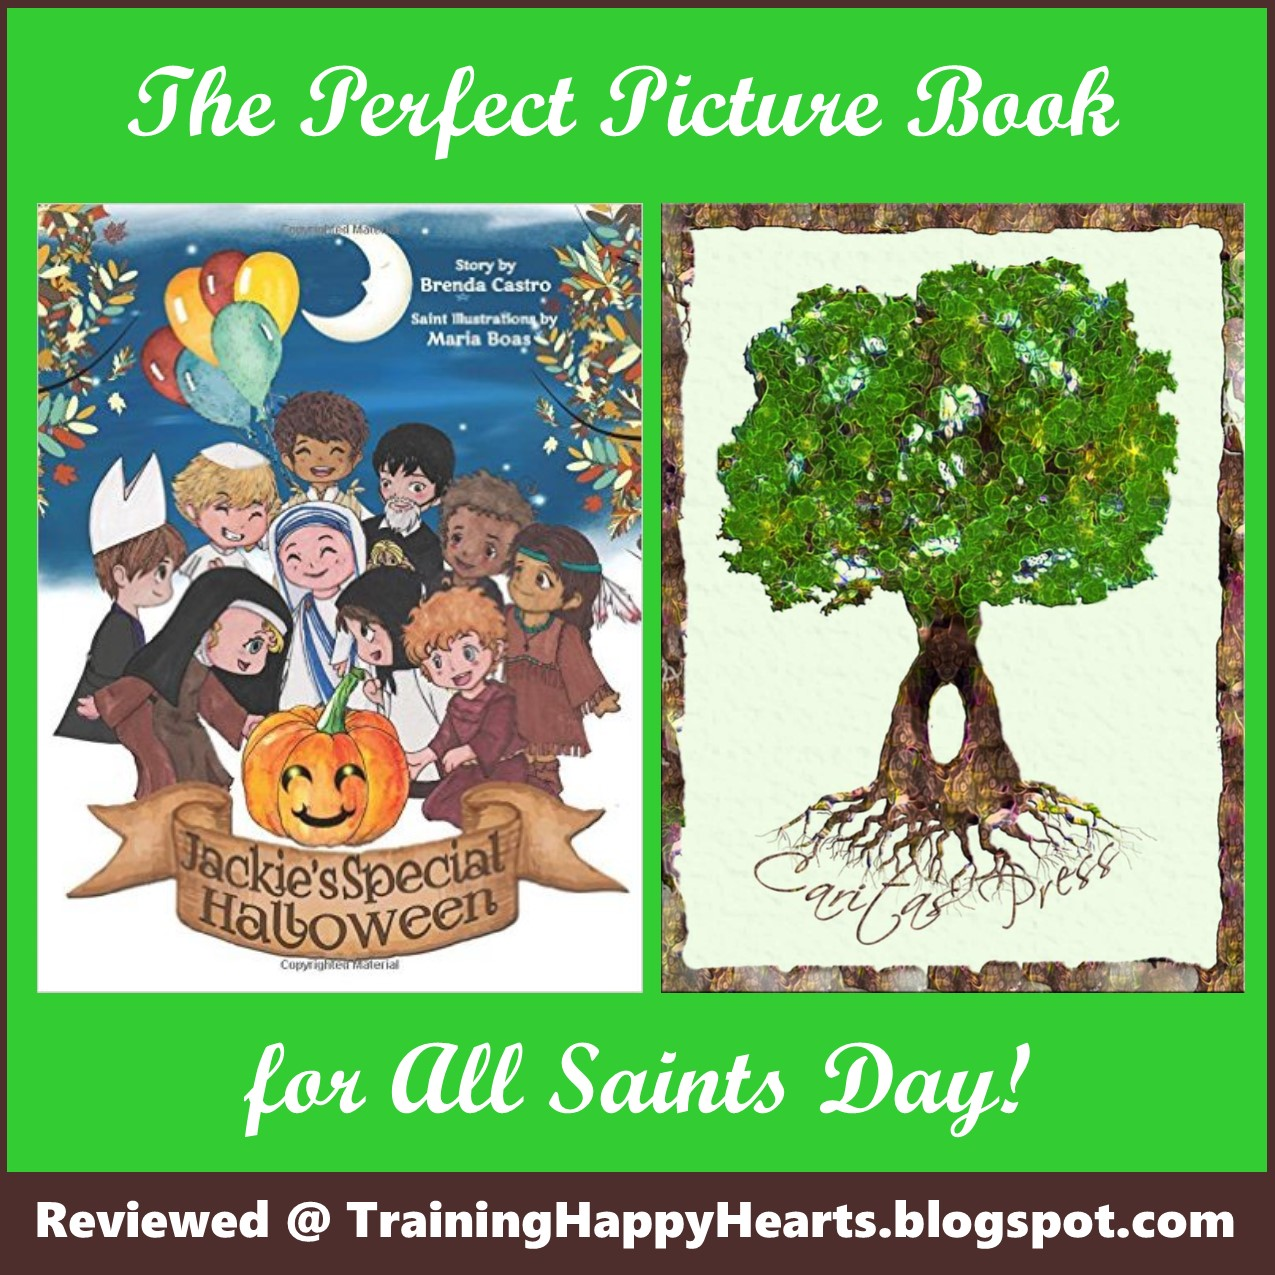 Training Happy Hearts A Must Have Picture Book For All